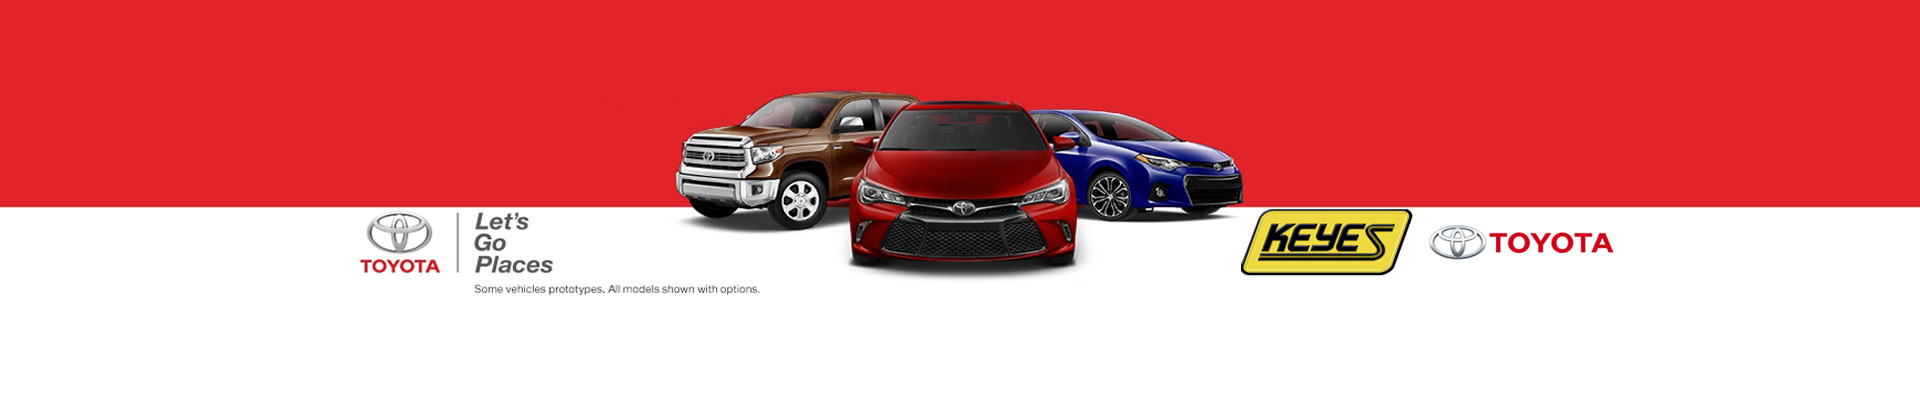 Keyes Toyota Of Van Nuys S Best New Car Deals Used Car Deals And